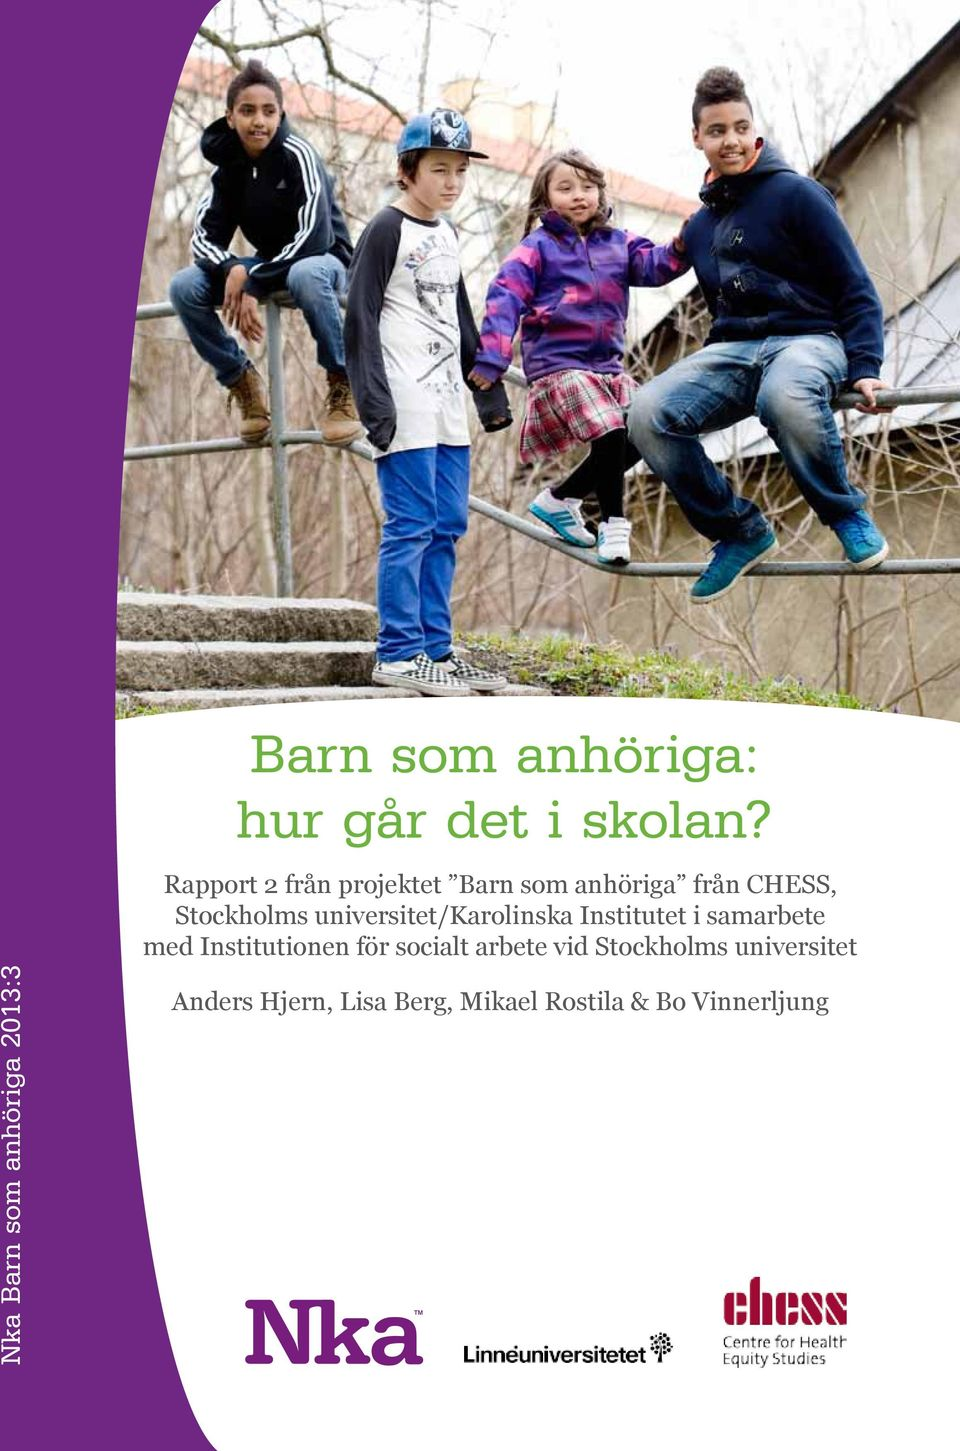 universitet/karolinska Institutet i samarbete med Institutionen för socialt